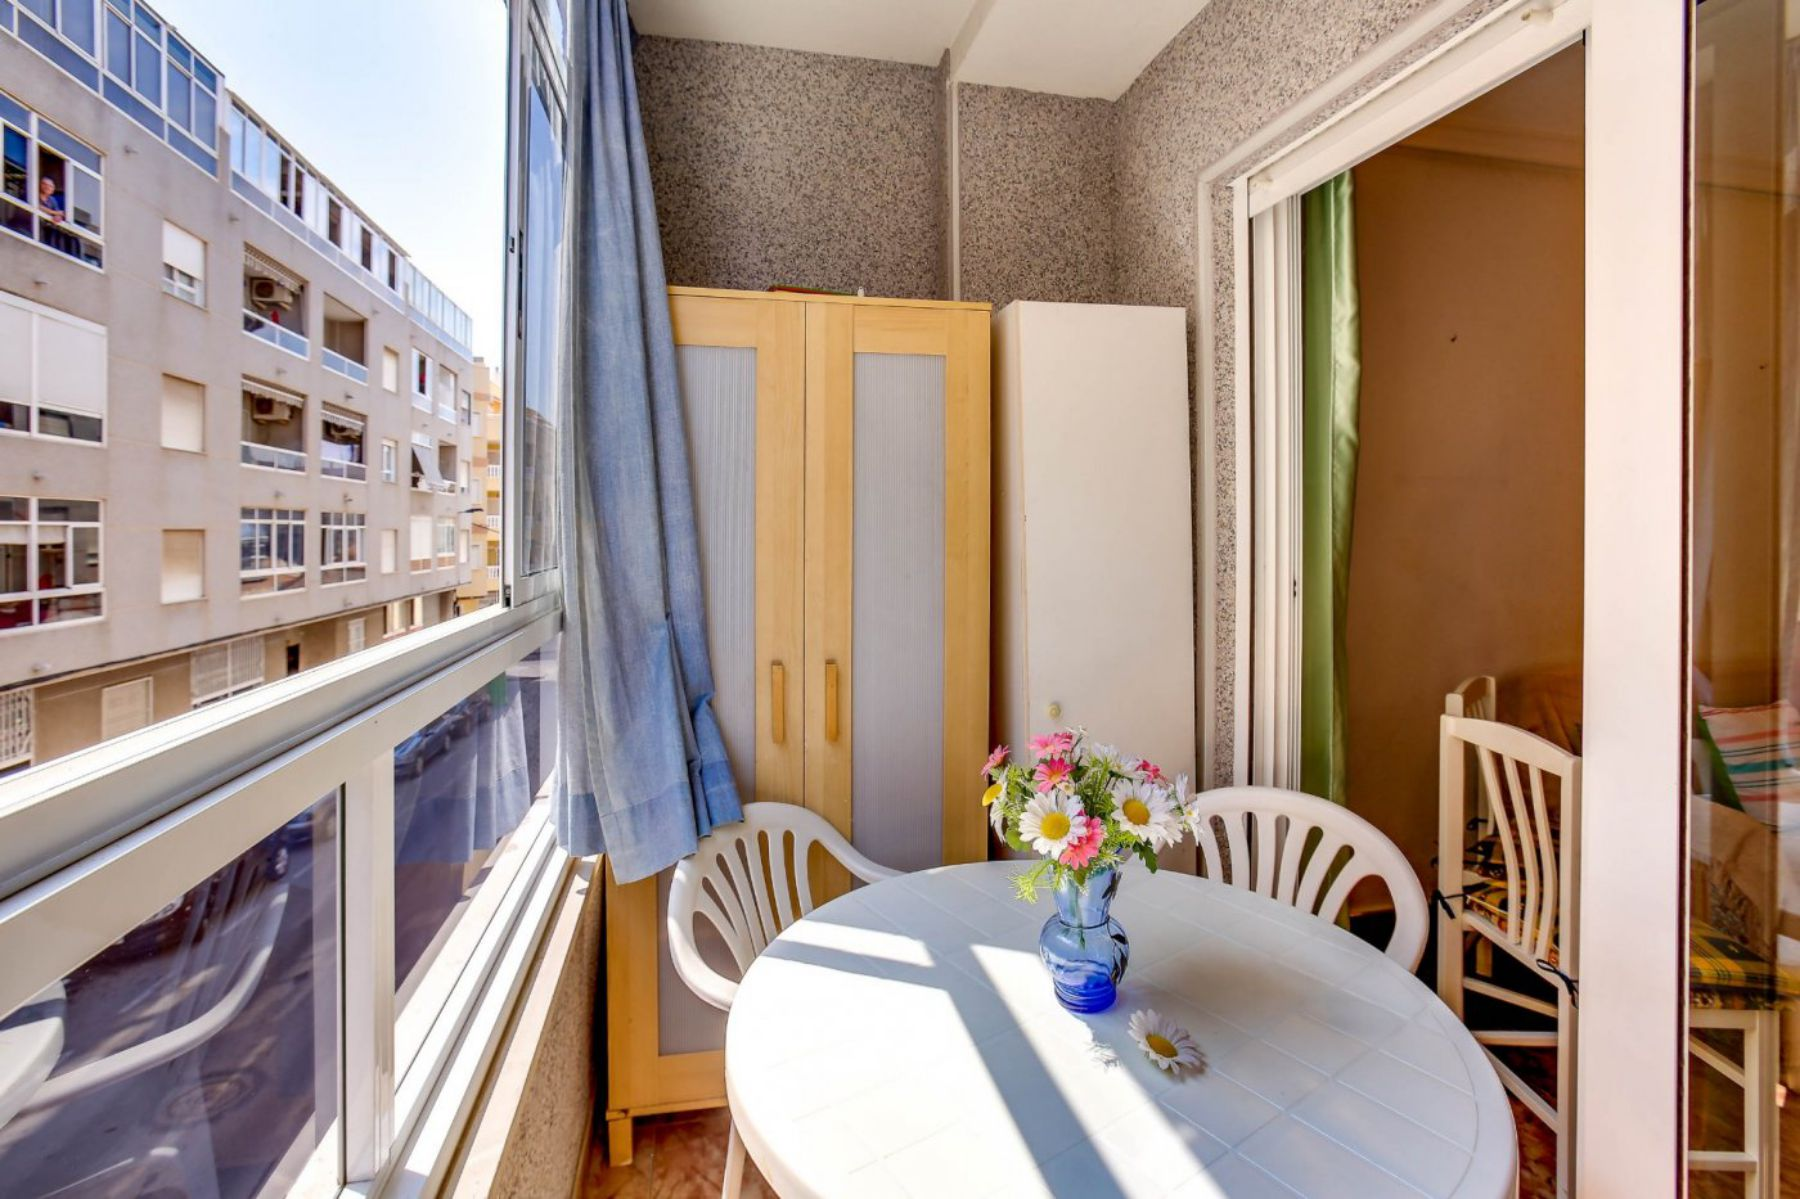 2 Bedrooms Apartment For Sale 400 Meters from El Cura Beach – Torrevieja